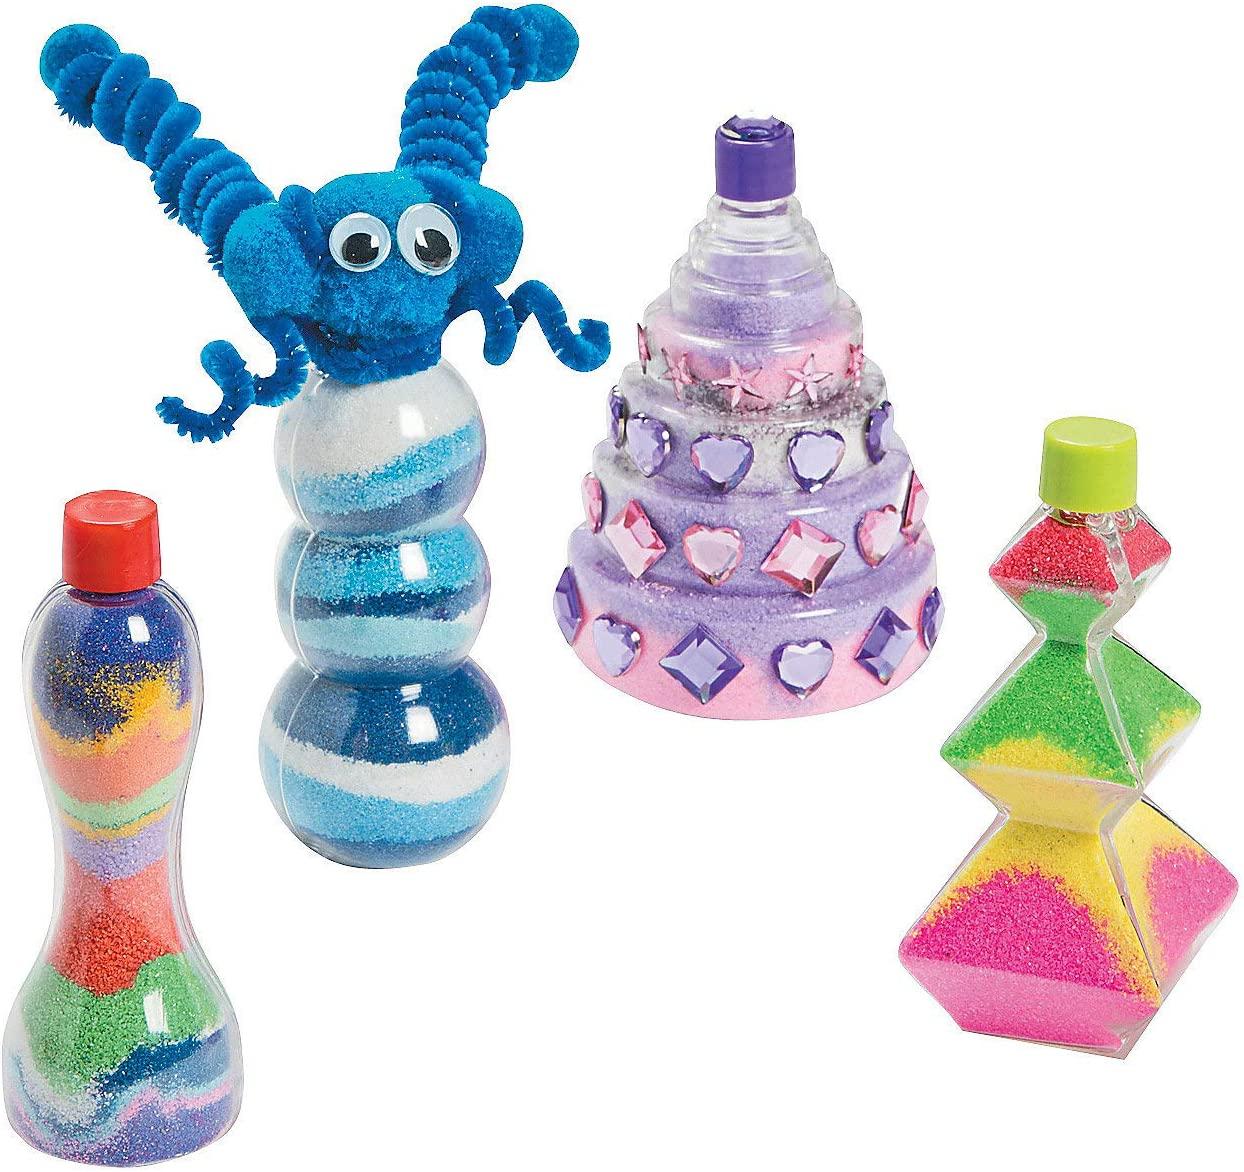 Funny Sand Art Bottles - Makes 12 Fun DIY Kids and for Crafts Super special Luxury goods price